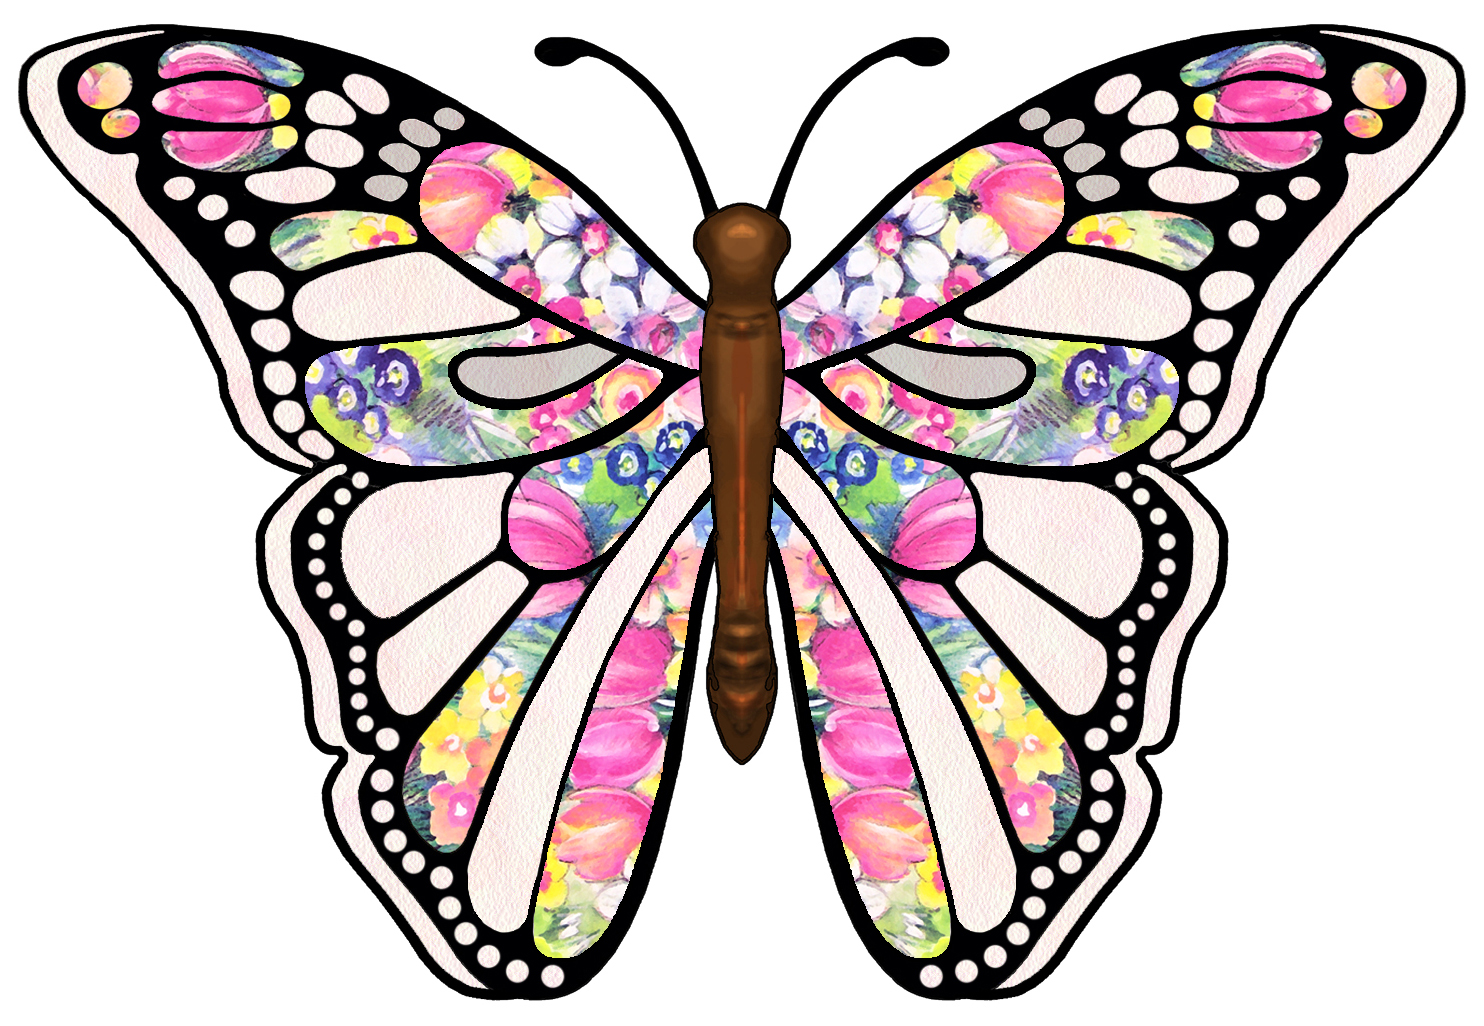 1484x1026 Butterfly Clip Art Butterfly Clipart Graphicsde 3